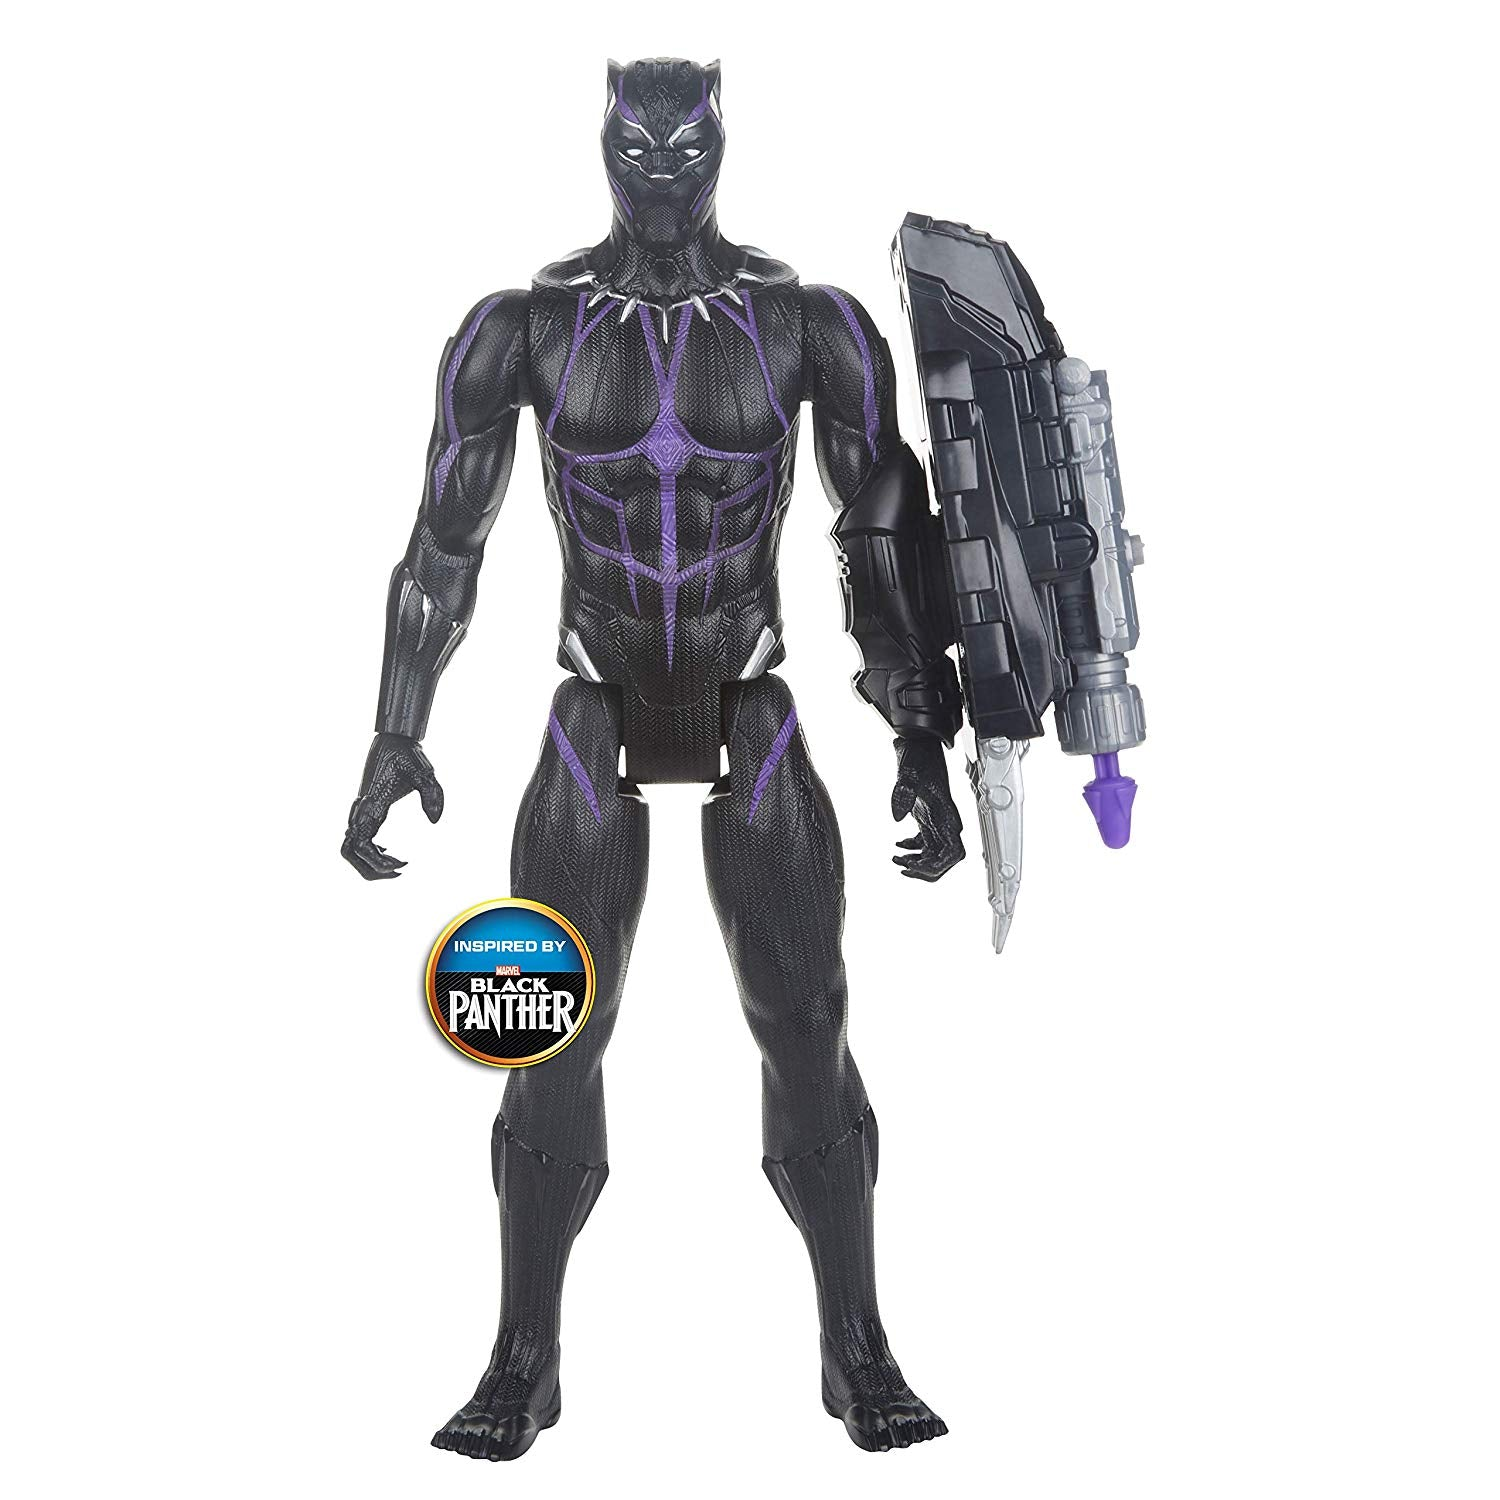 Avengers Endgame Black Panther Figure with Power FX Pack by Hasbro